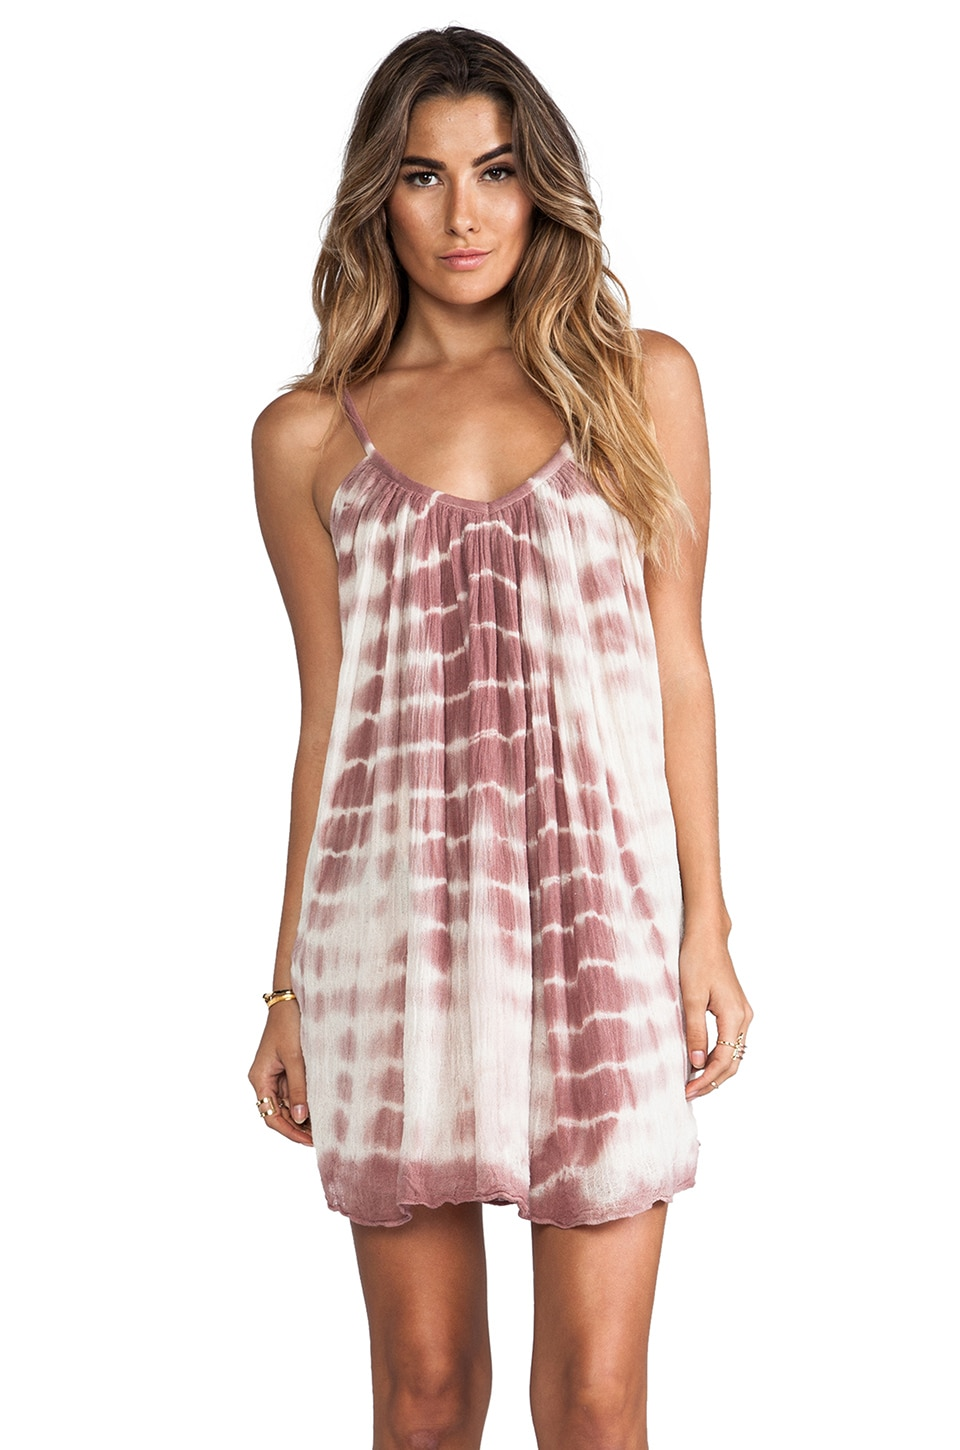 Jen's Pirate Booty Nuevo Tinkerbell Tie Dye Mini Dress in Natural & Amethyst LTD